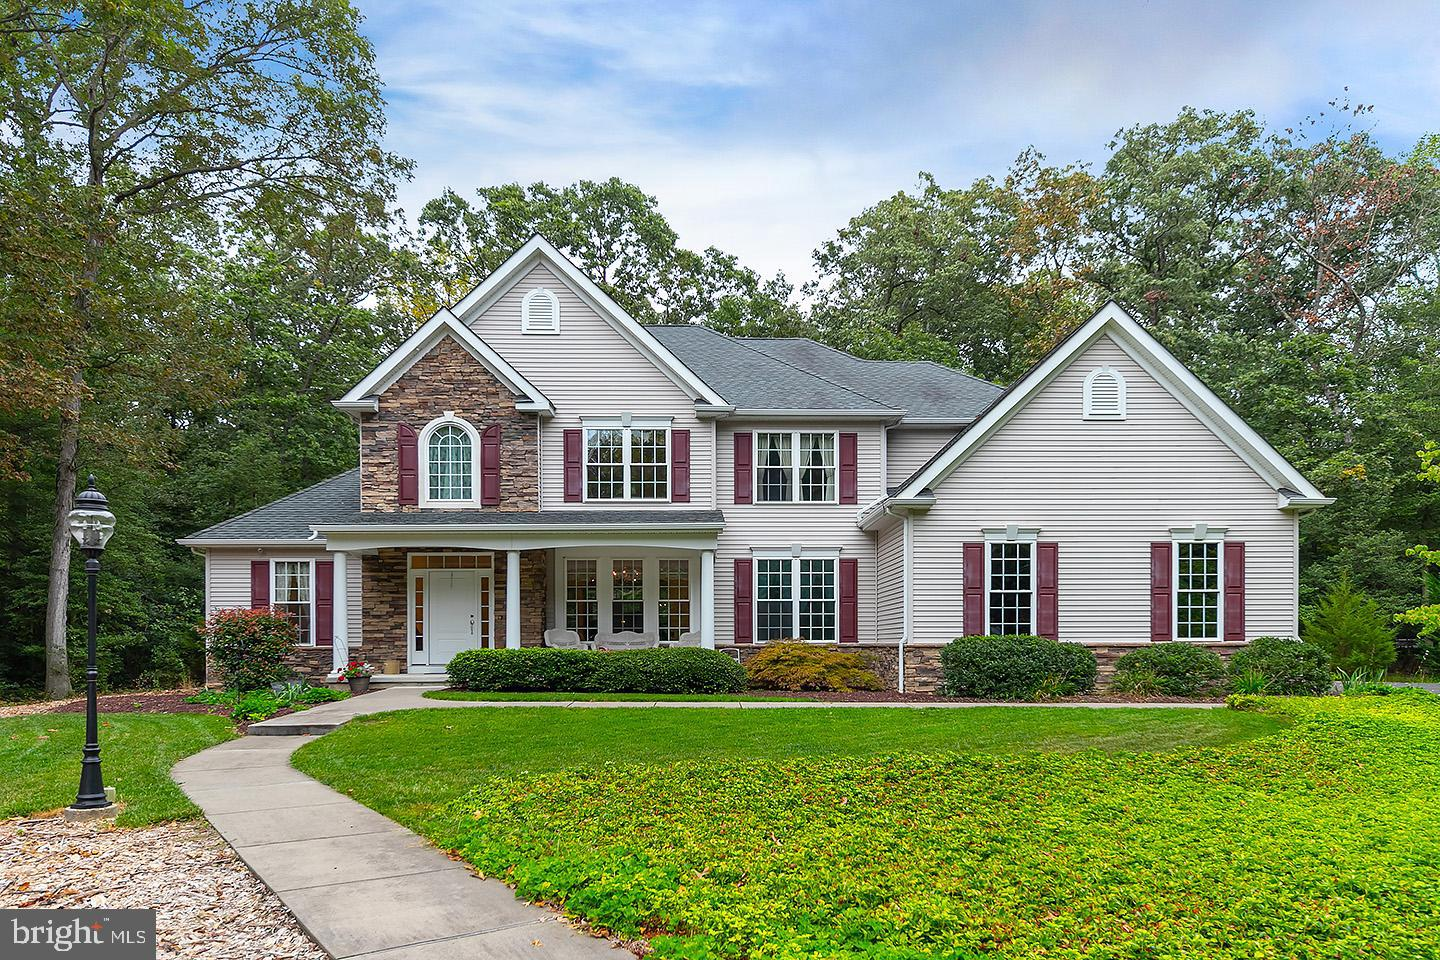 Single Family Homes for Sale at Monroeville, New Jersey 08343 United States